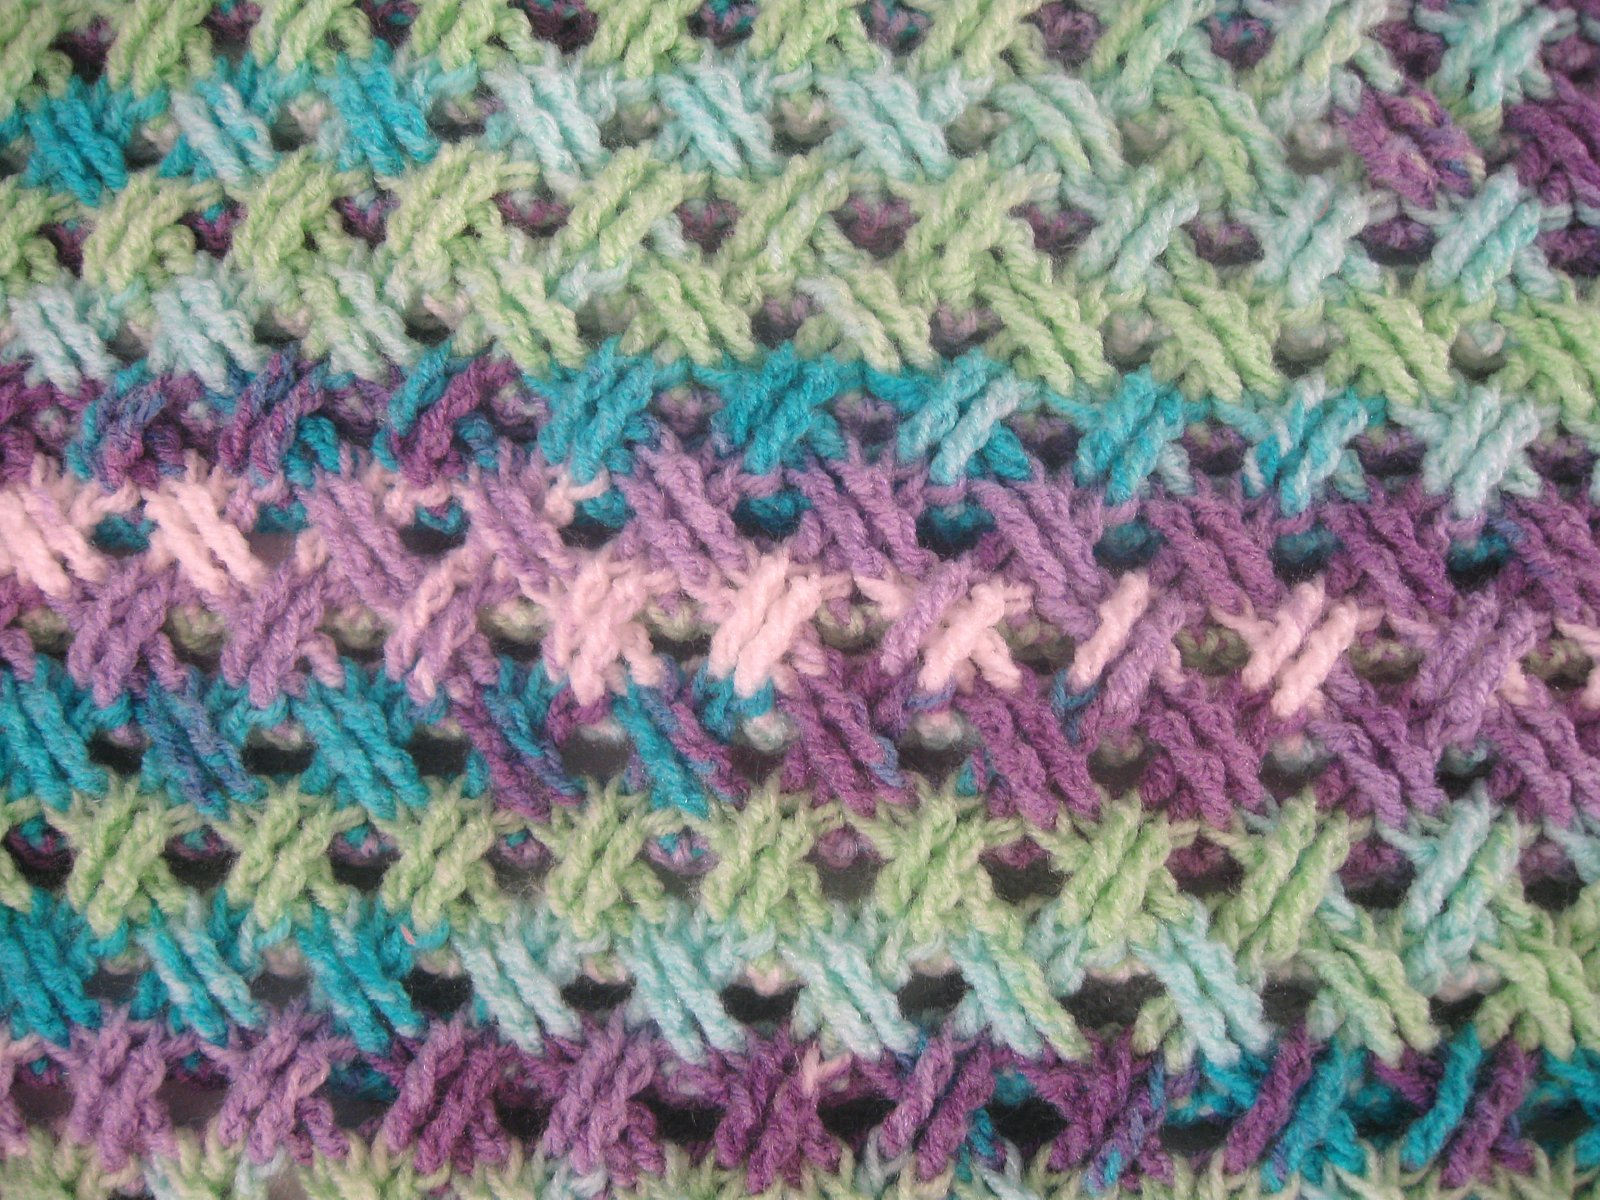 Crochet Stitches With Images : Crochet+Stitches Crochet Stitches